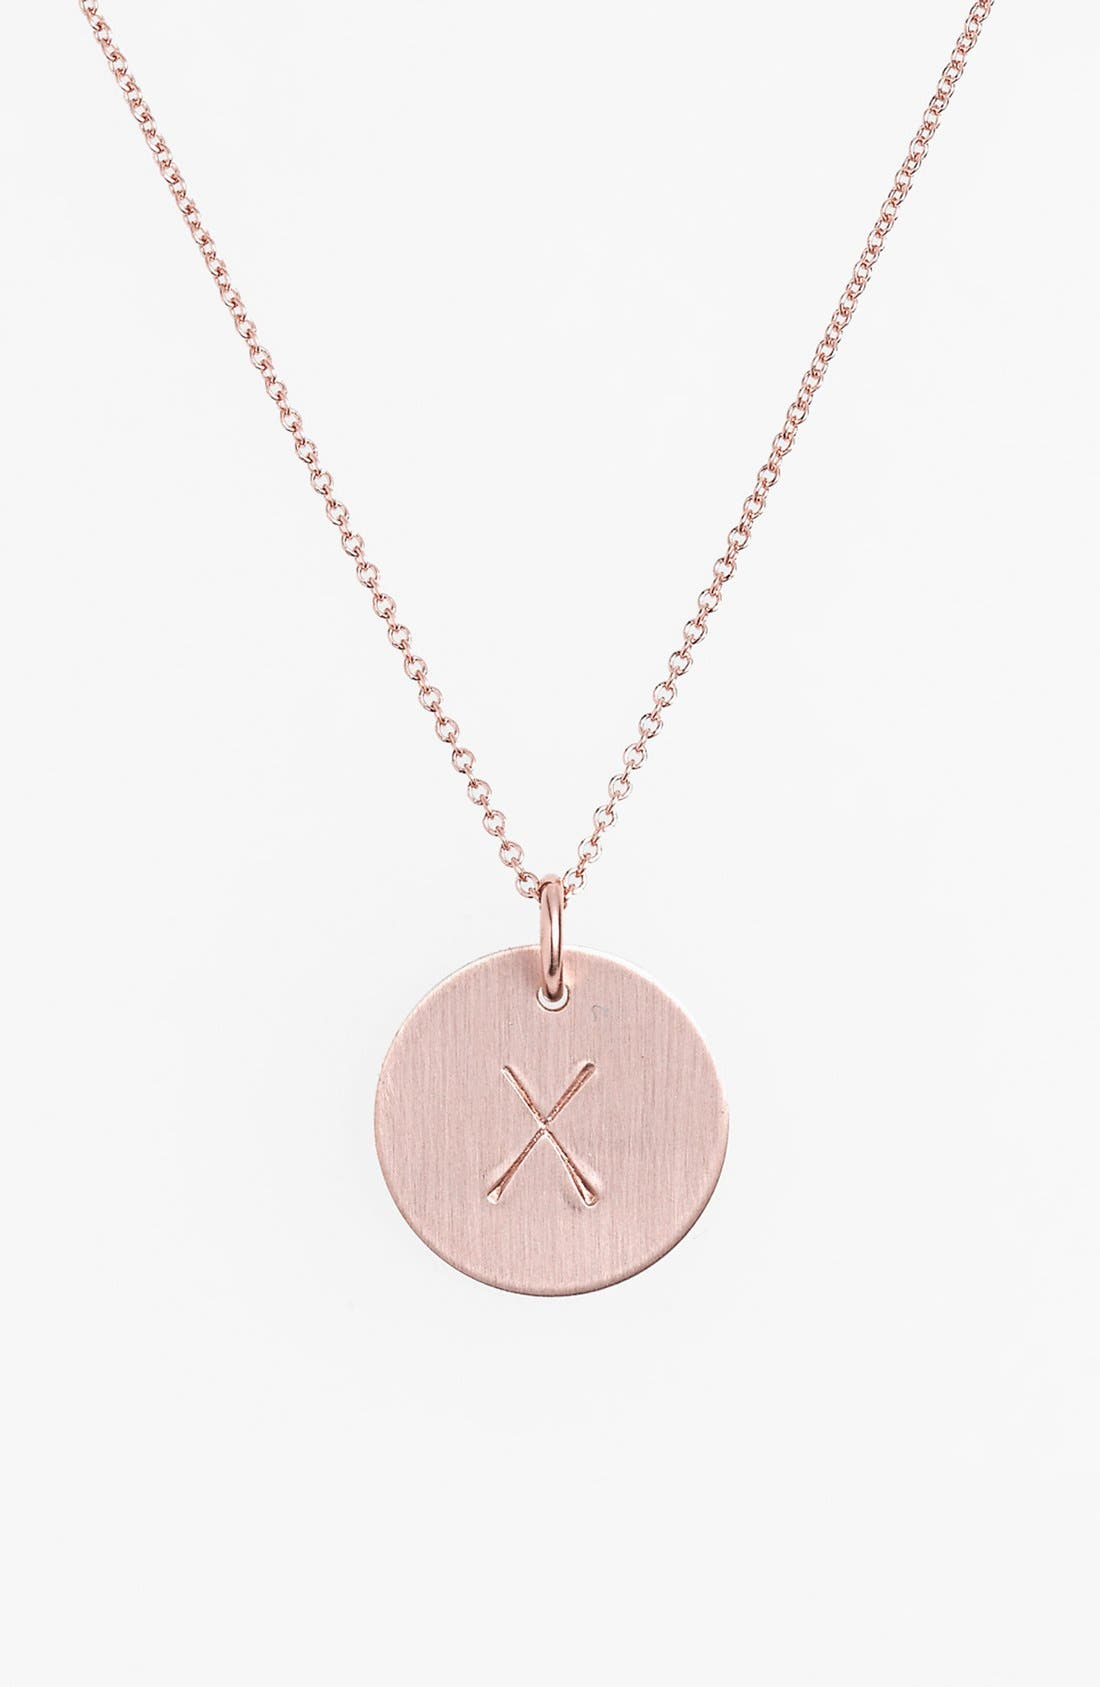 14k-Rose Gold Fill Initial Disc Necklace,                             Main thumbnail 24, color,